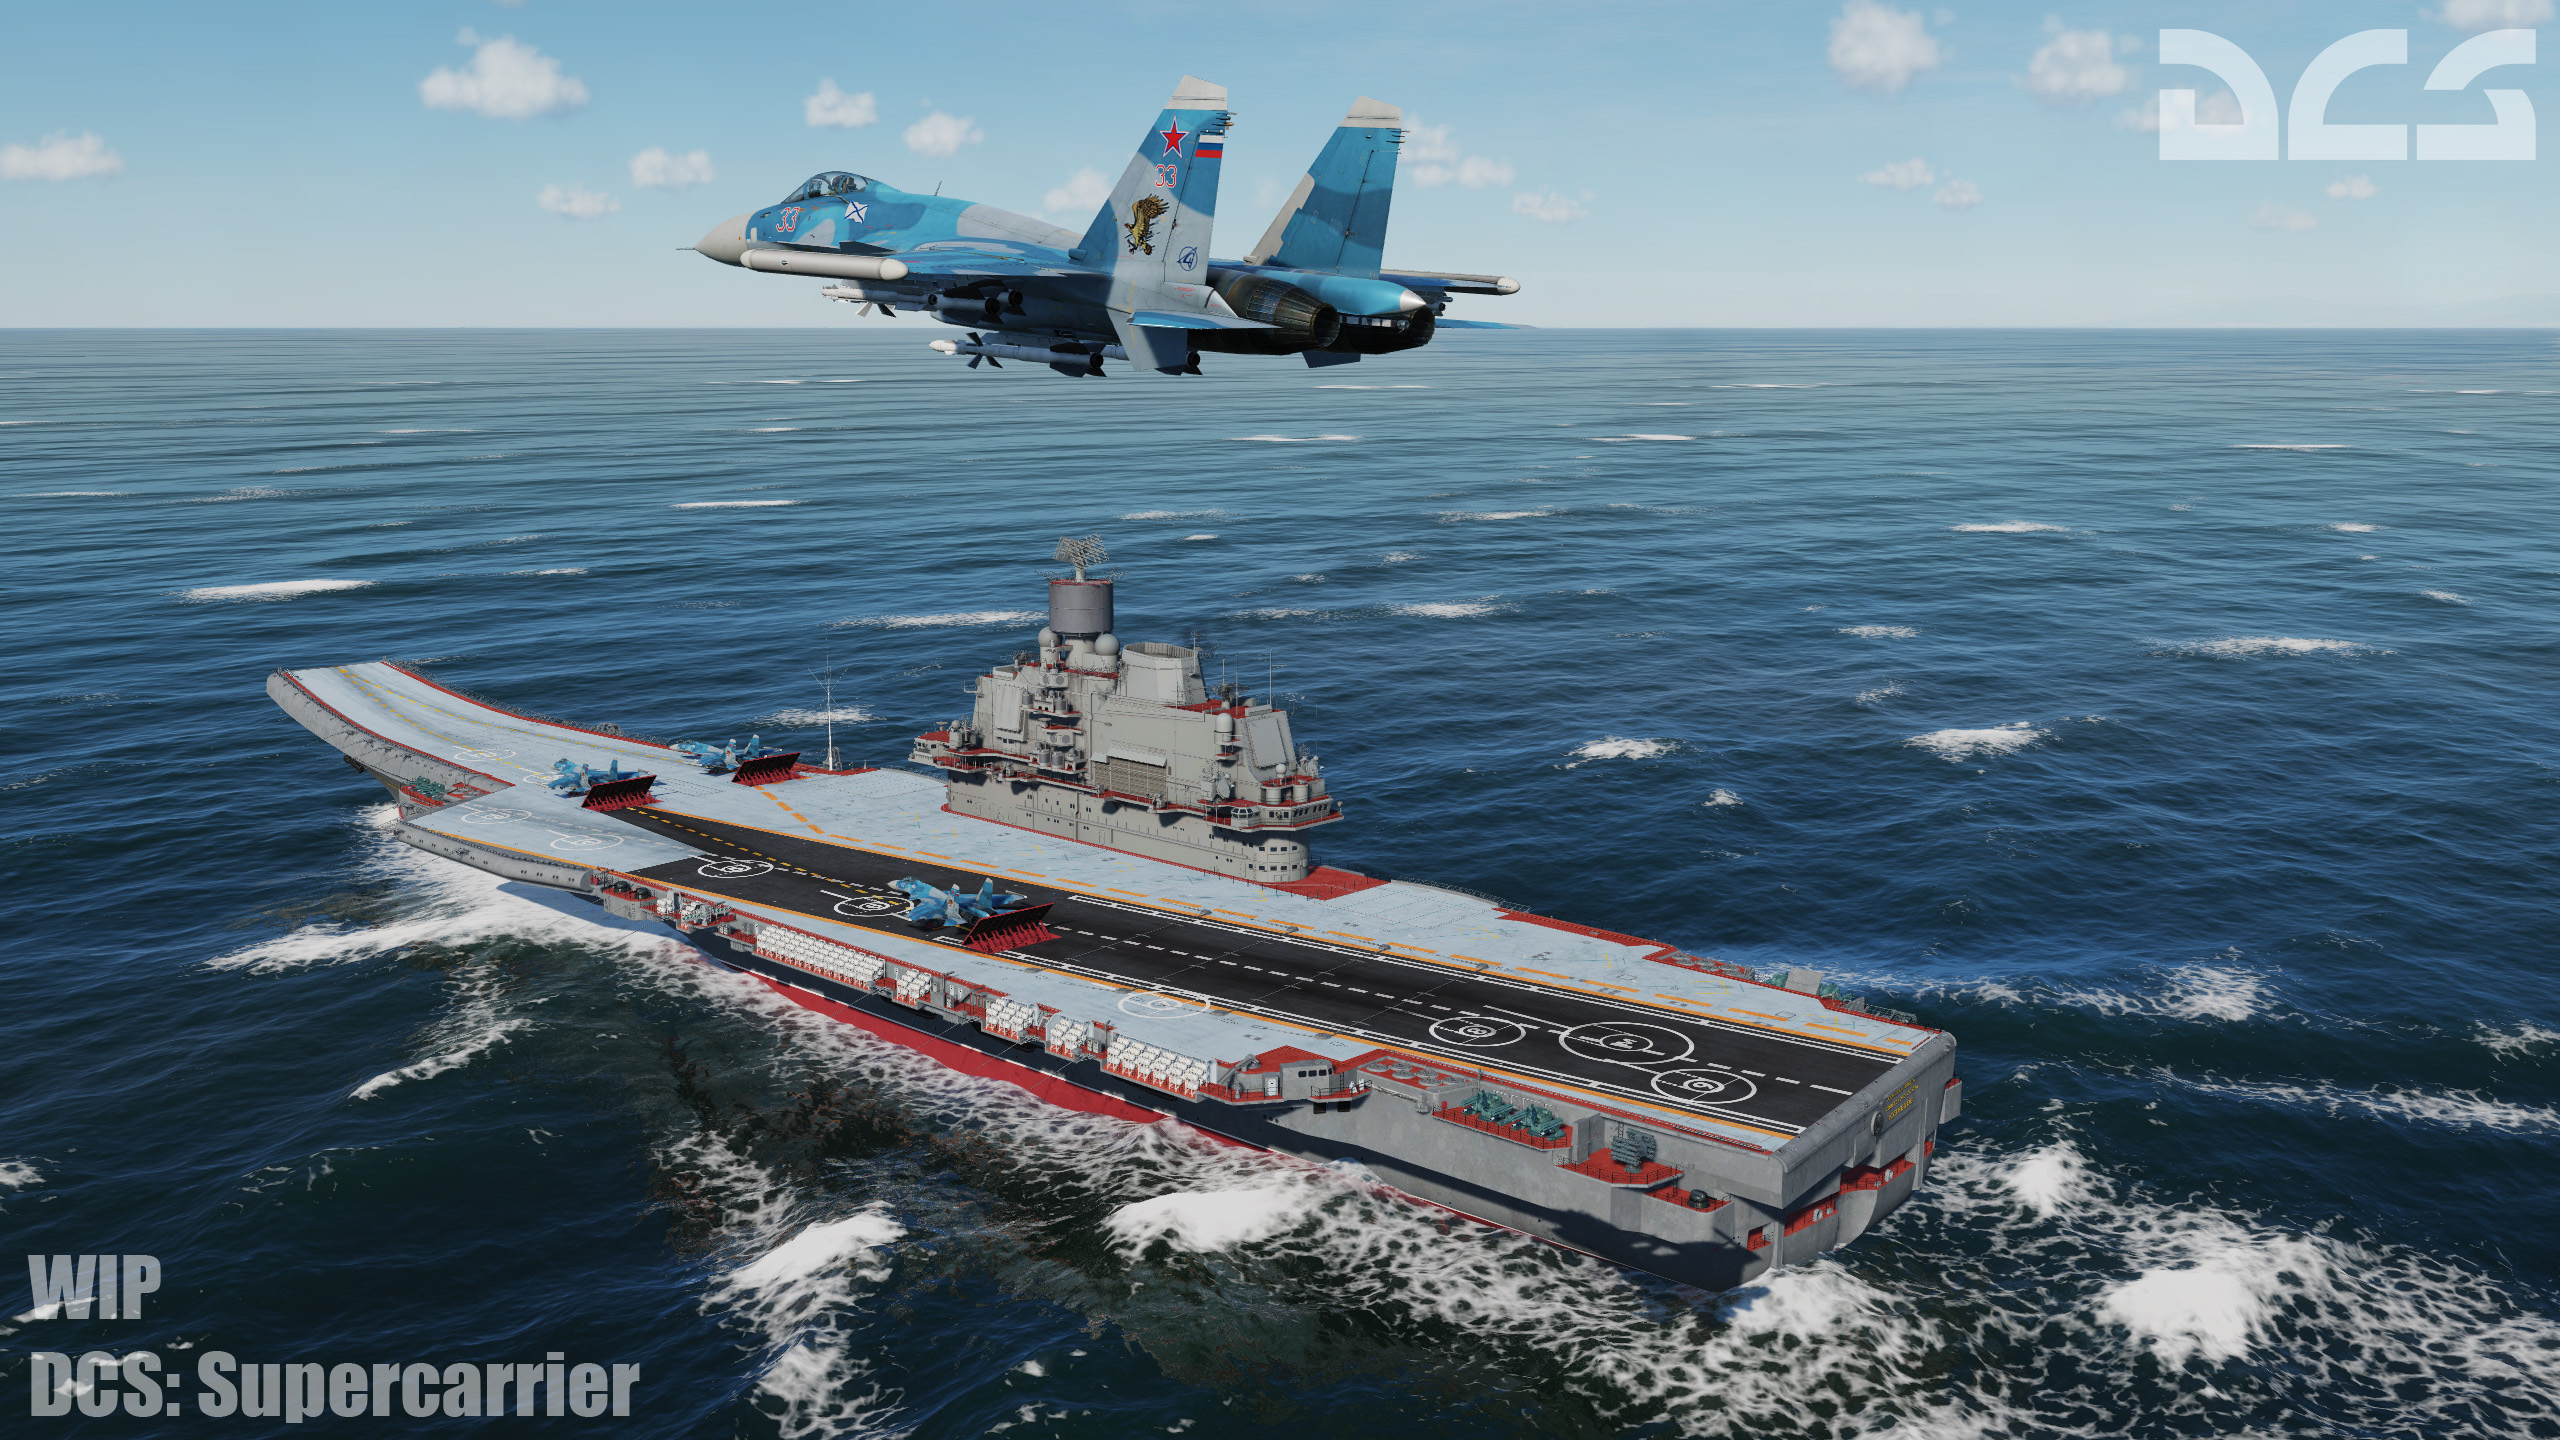 www.digitalcombatsimulator.com/upload/iblock/aaf/DCS-Supercarrier_02.jpg